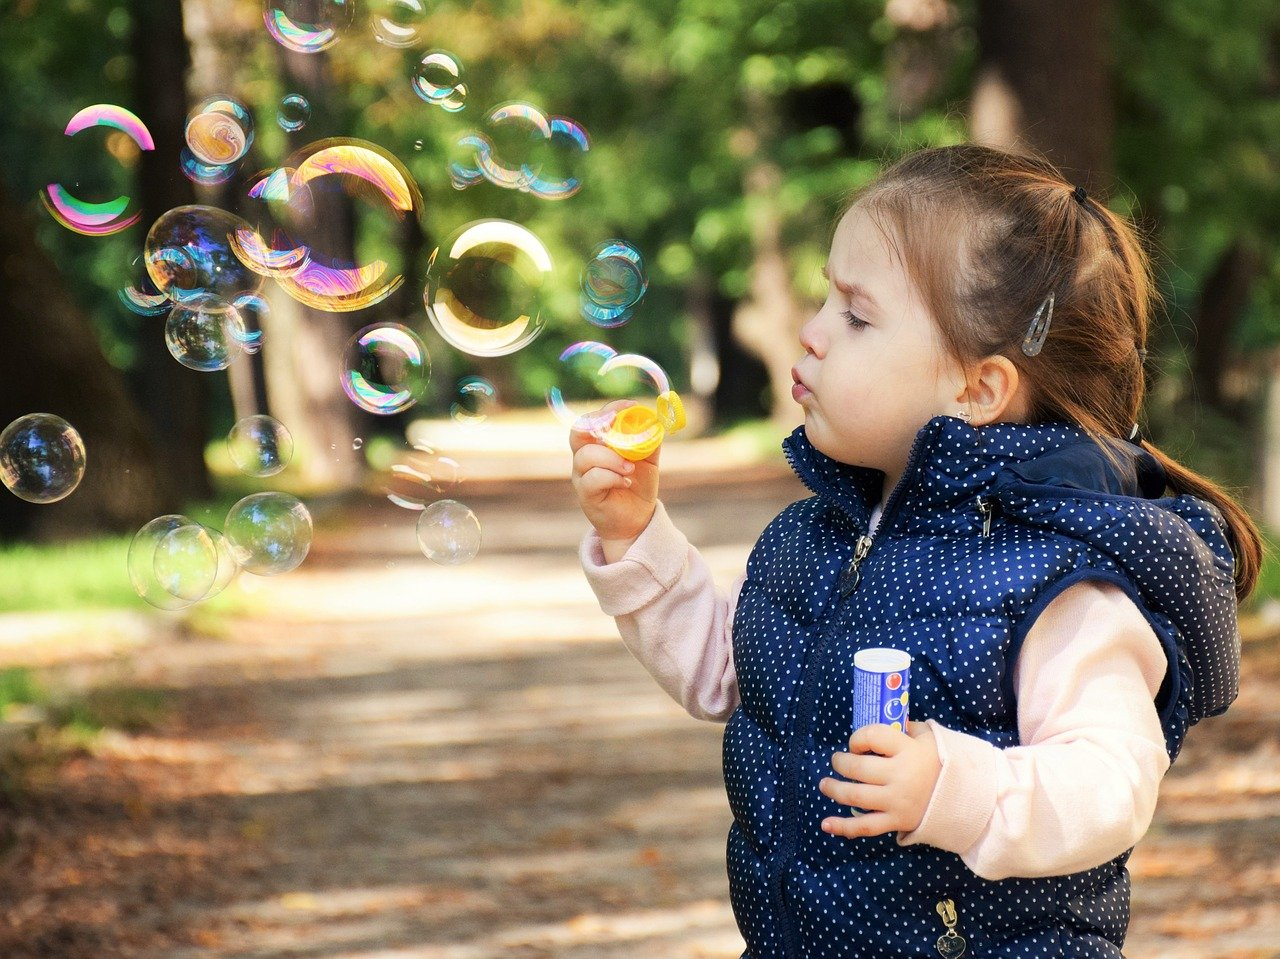 kid with bubbles